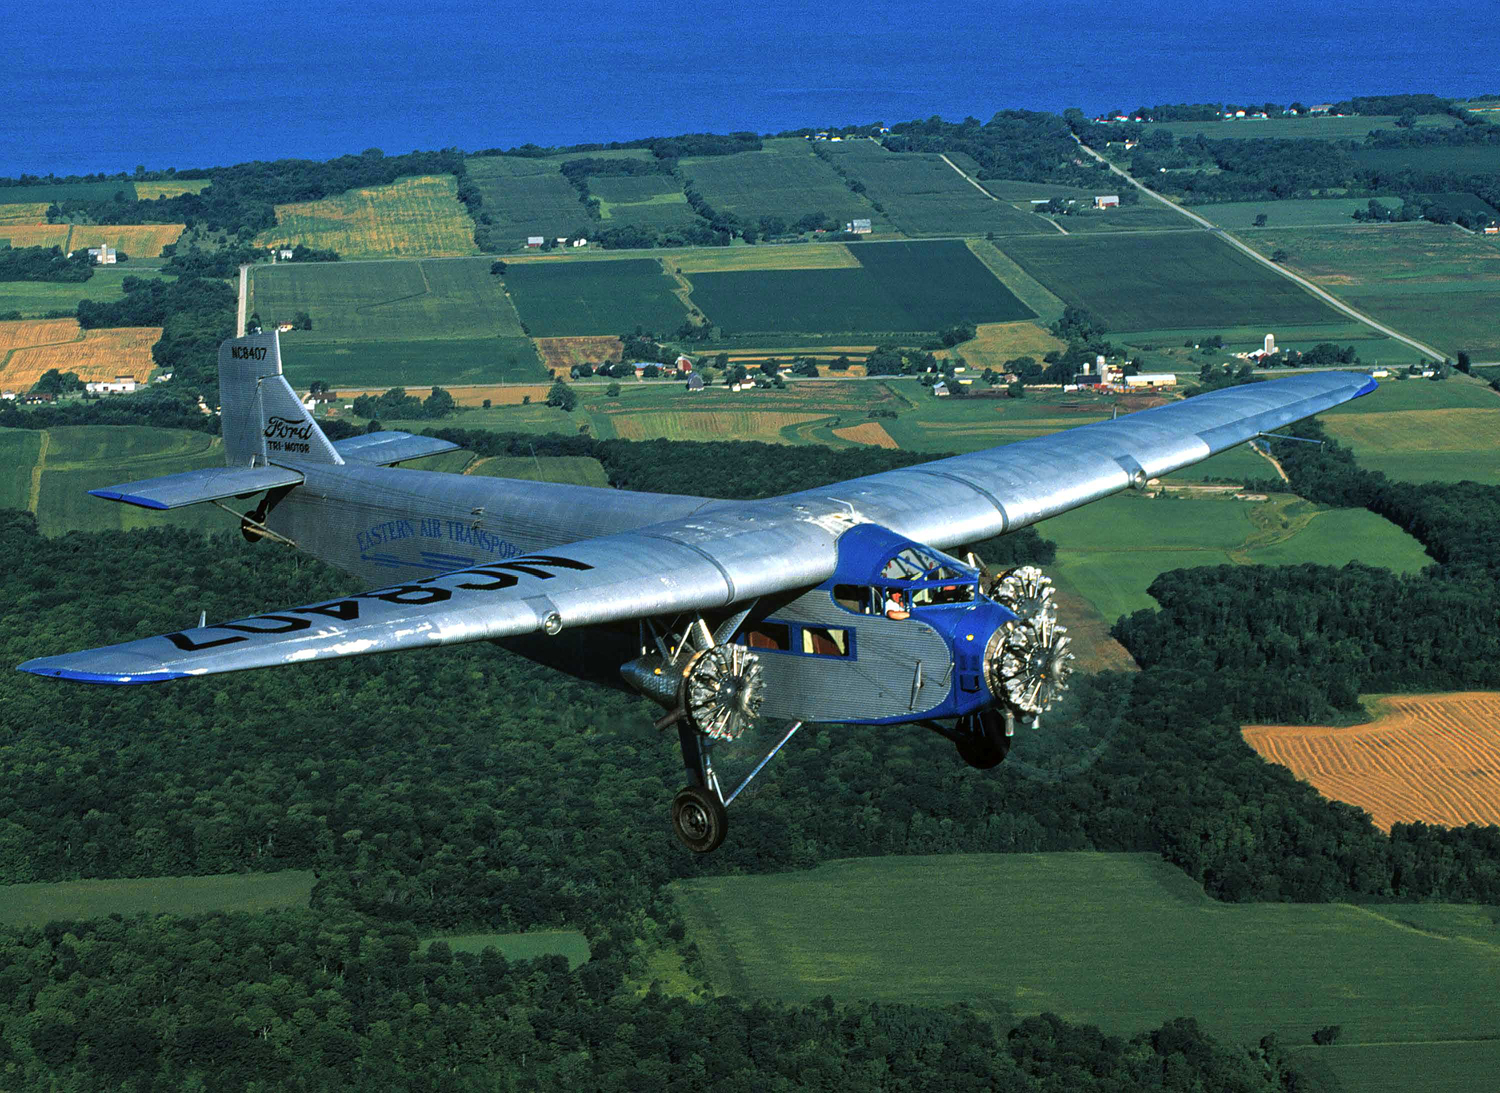 EAA Tri-Motor Makes Last Stop for 2013